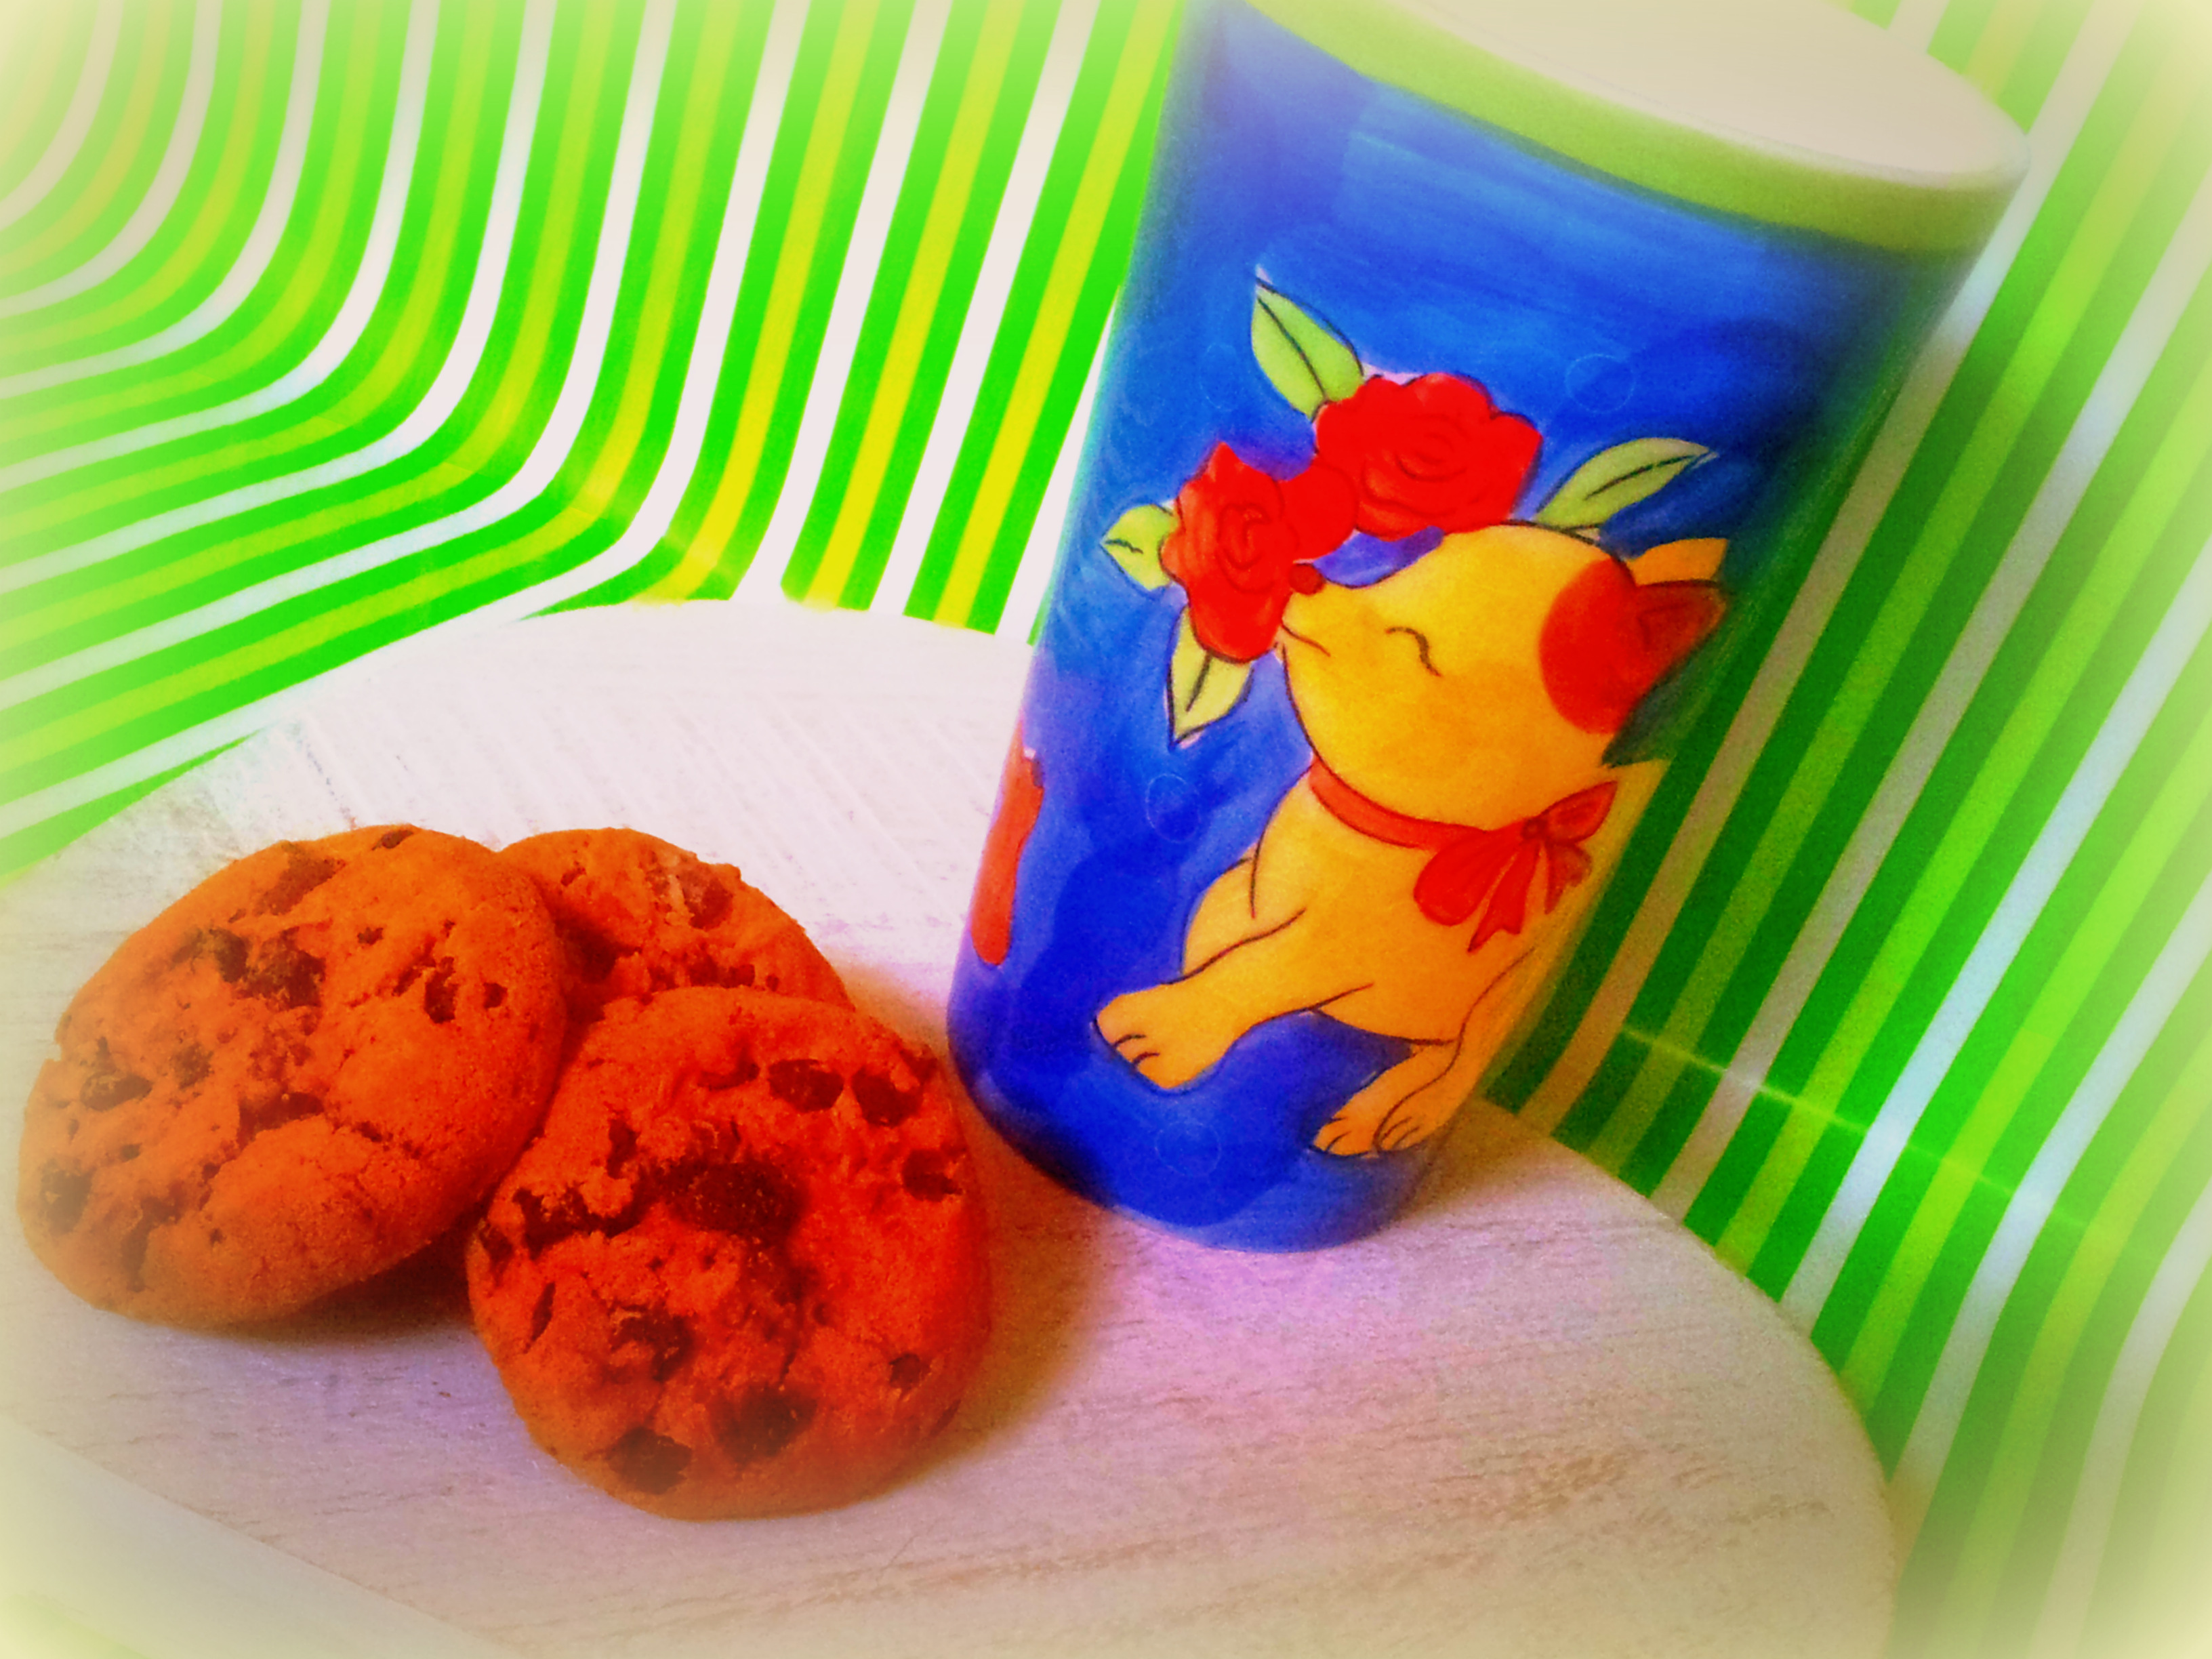 Ricetta dolce: Cookies con i corn flakes